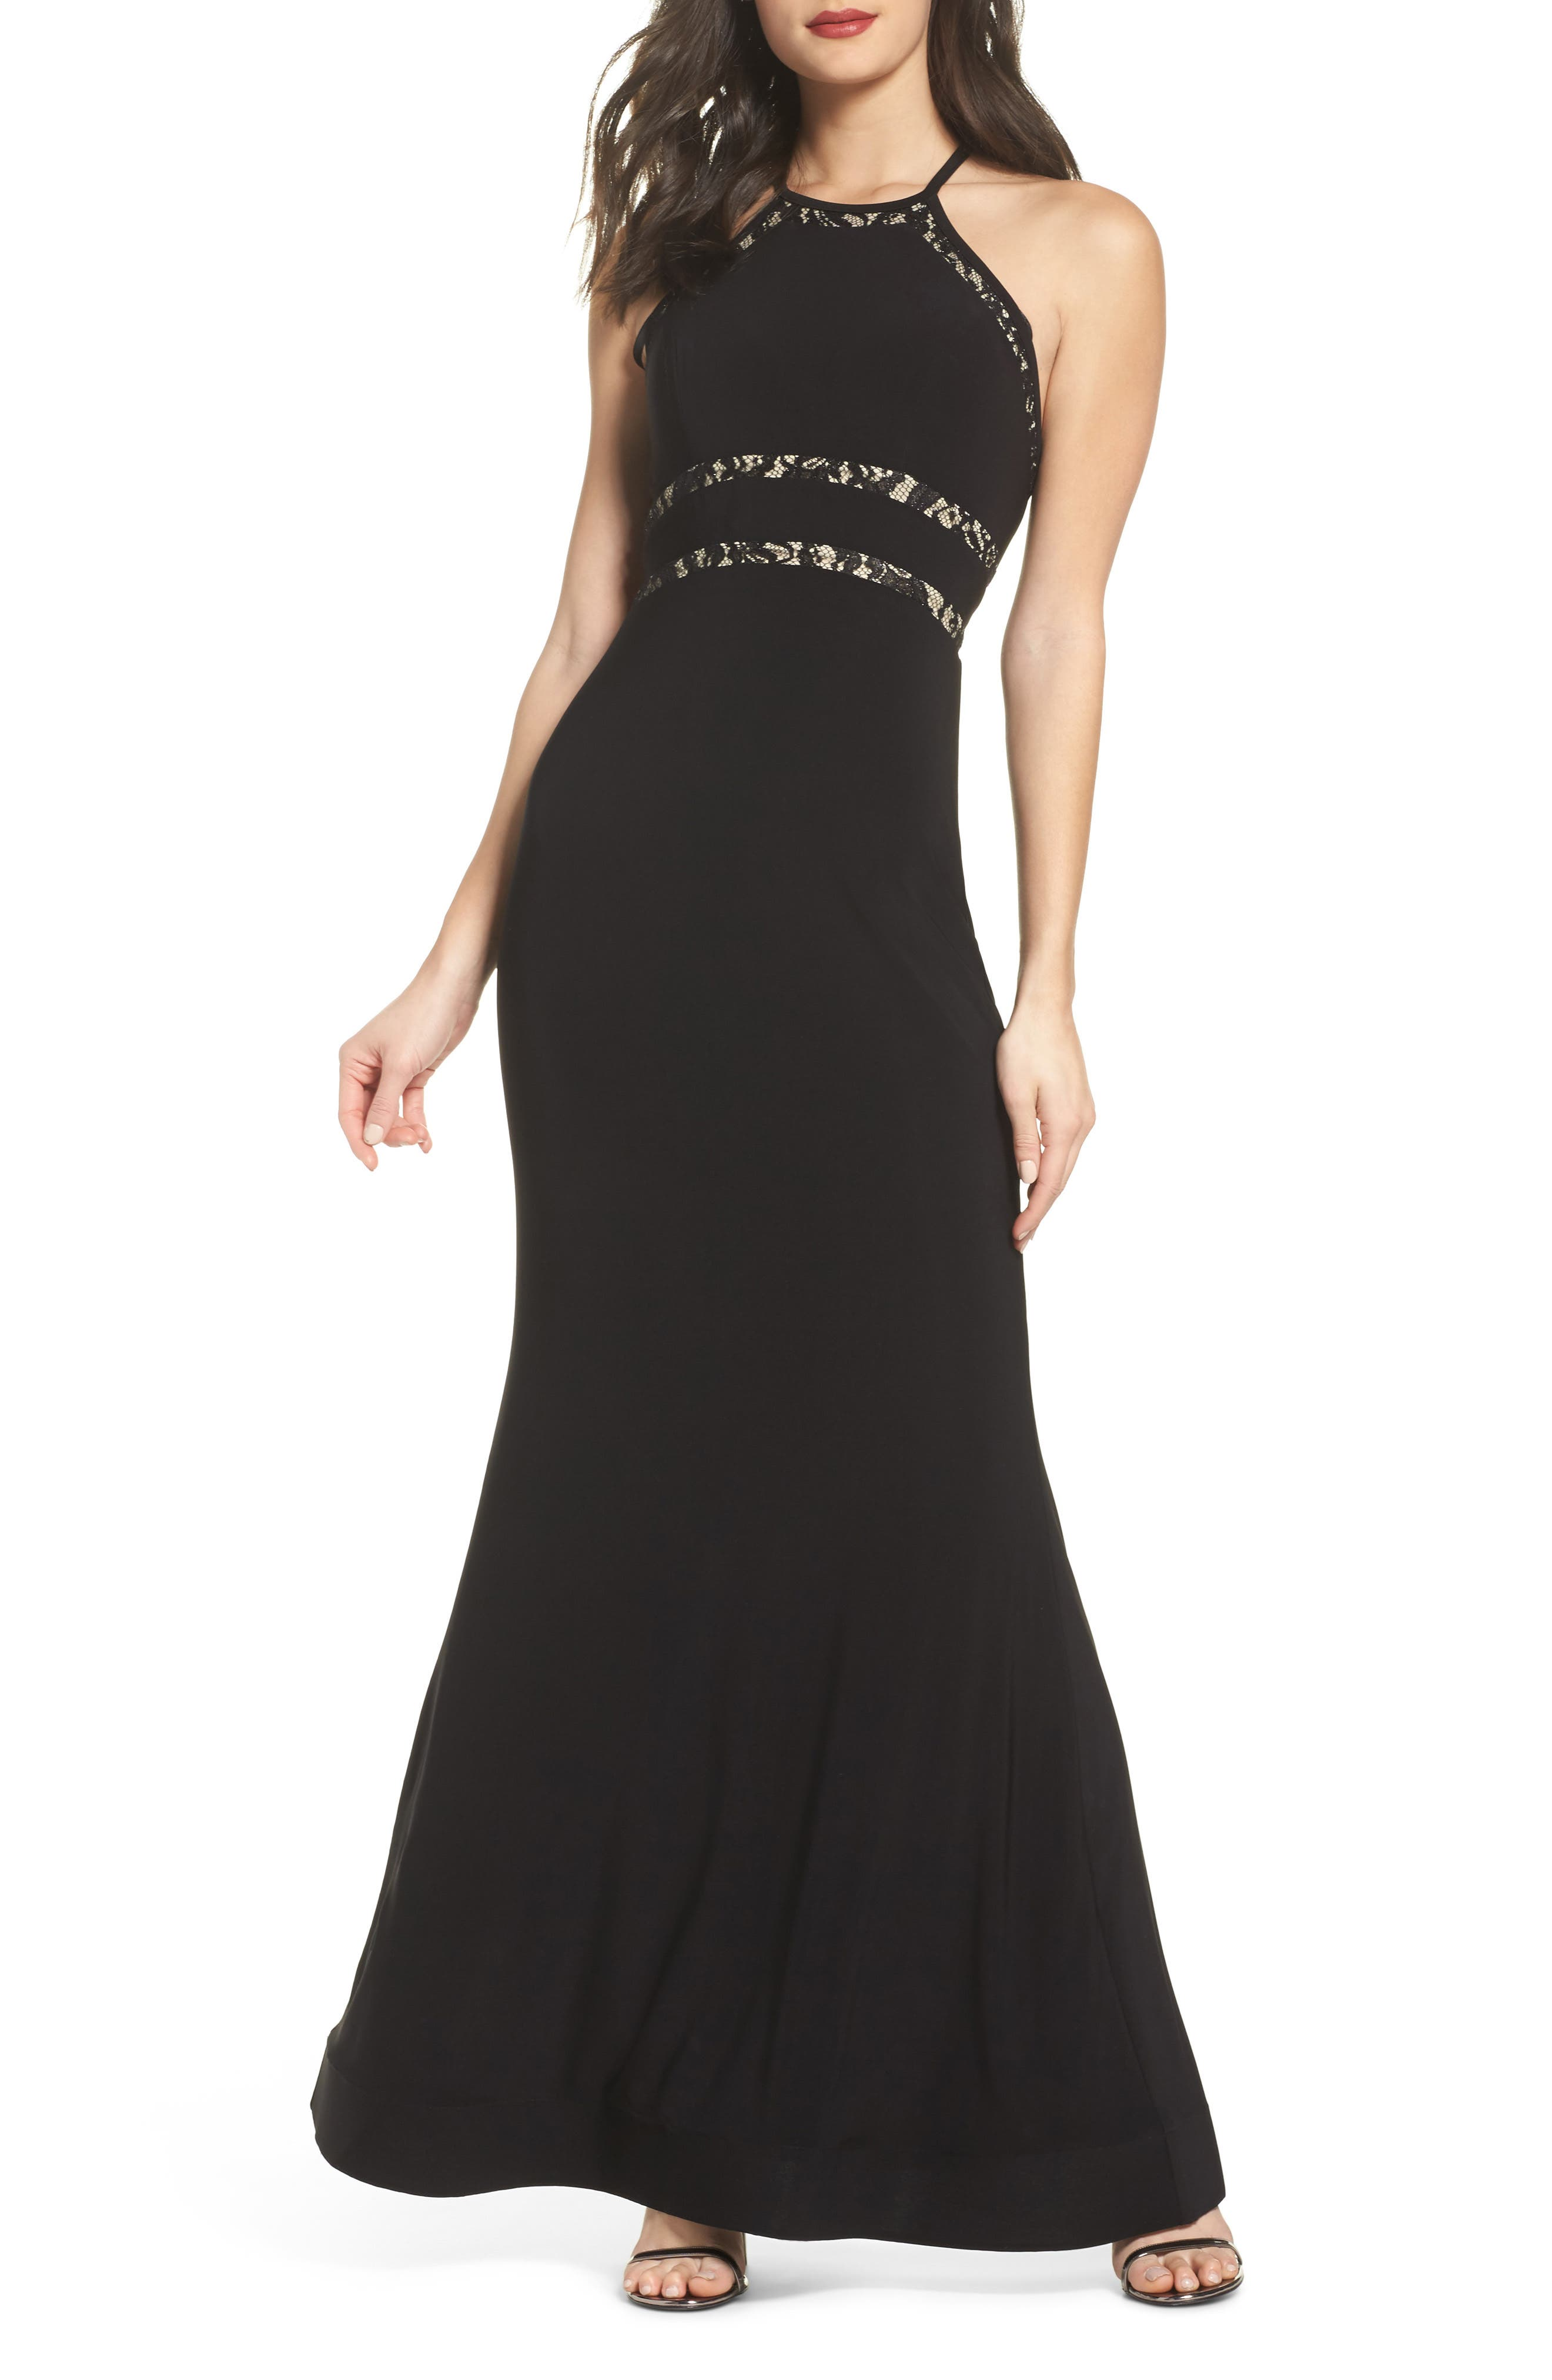 Alternate Image 1 Selected - Sequin Hearts Ruffle Back Halter Gown